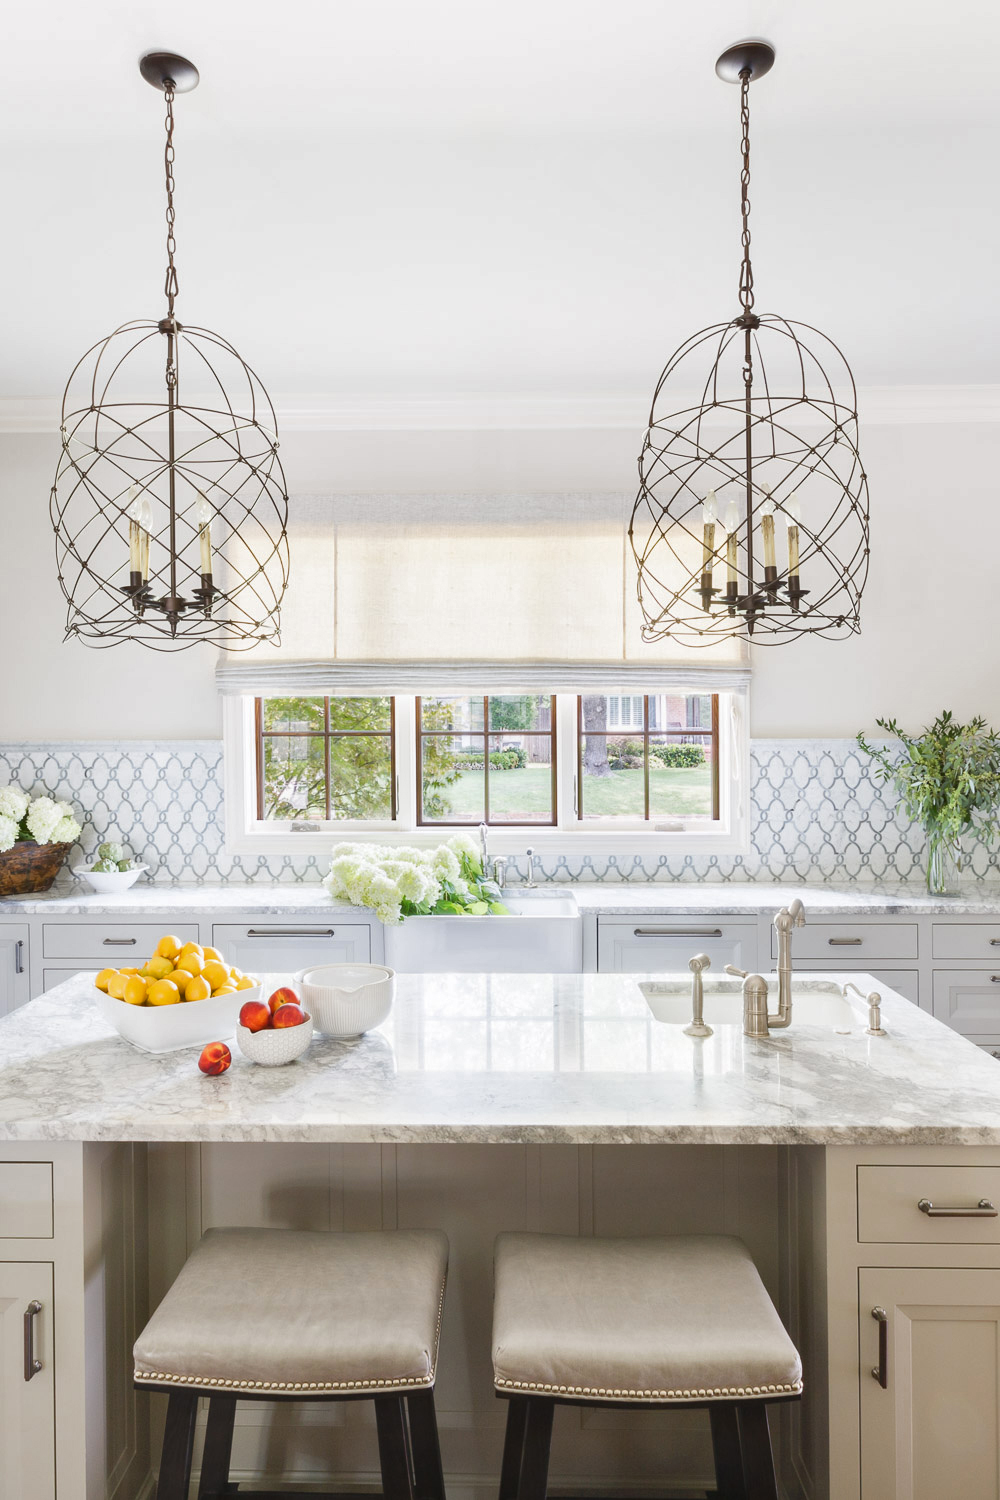 silver and white tile backsplash in bright kitchen